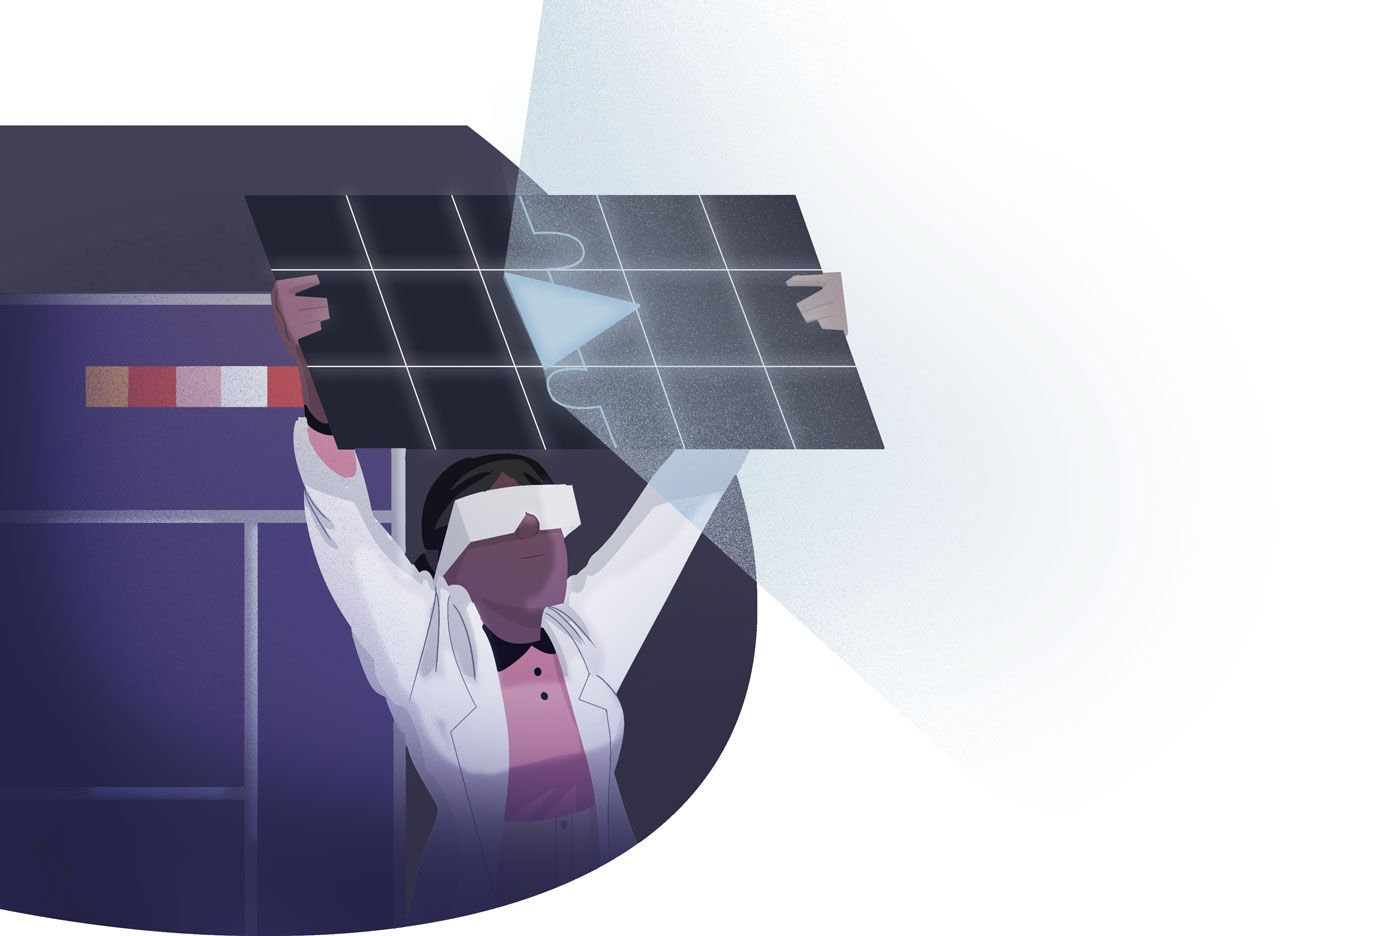 A scientist holding up a solar panel-like piece of technology, with light shinning from it.